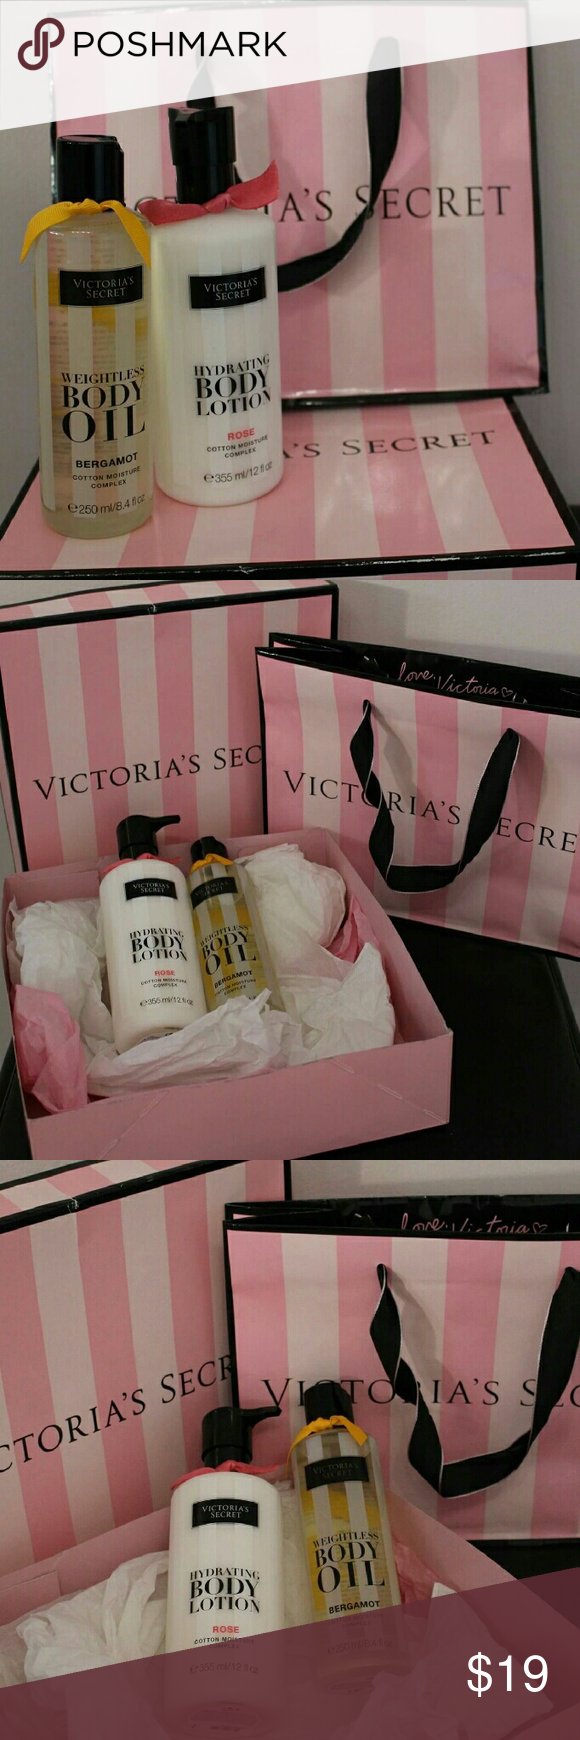 Victoria's secret body lotion and body oil Great gift for any female. With box and bag. Body oil and body lotion. Victoria's Secret Other